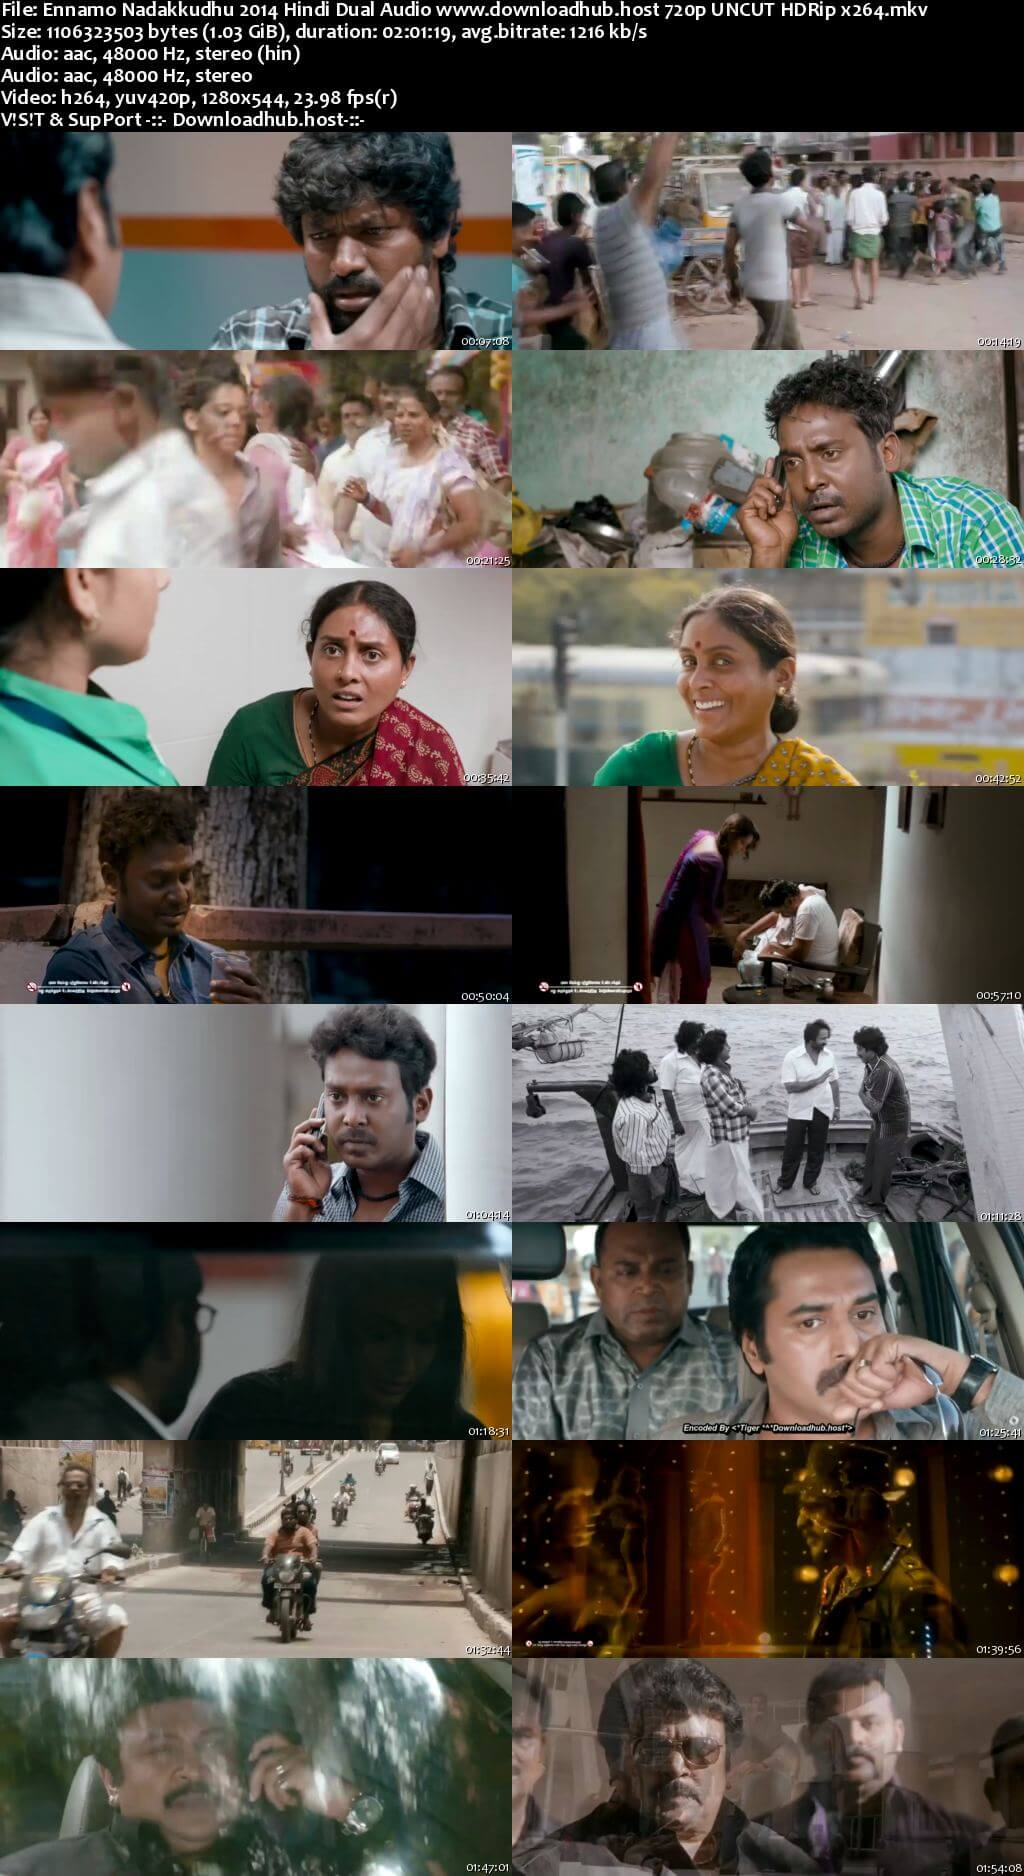 Ennamo Nadakkudhu 2014 Hindi Dual Audio 720p UNCUT HDRip x264